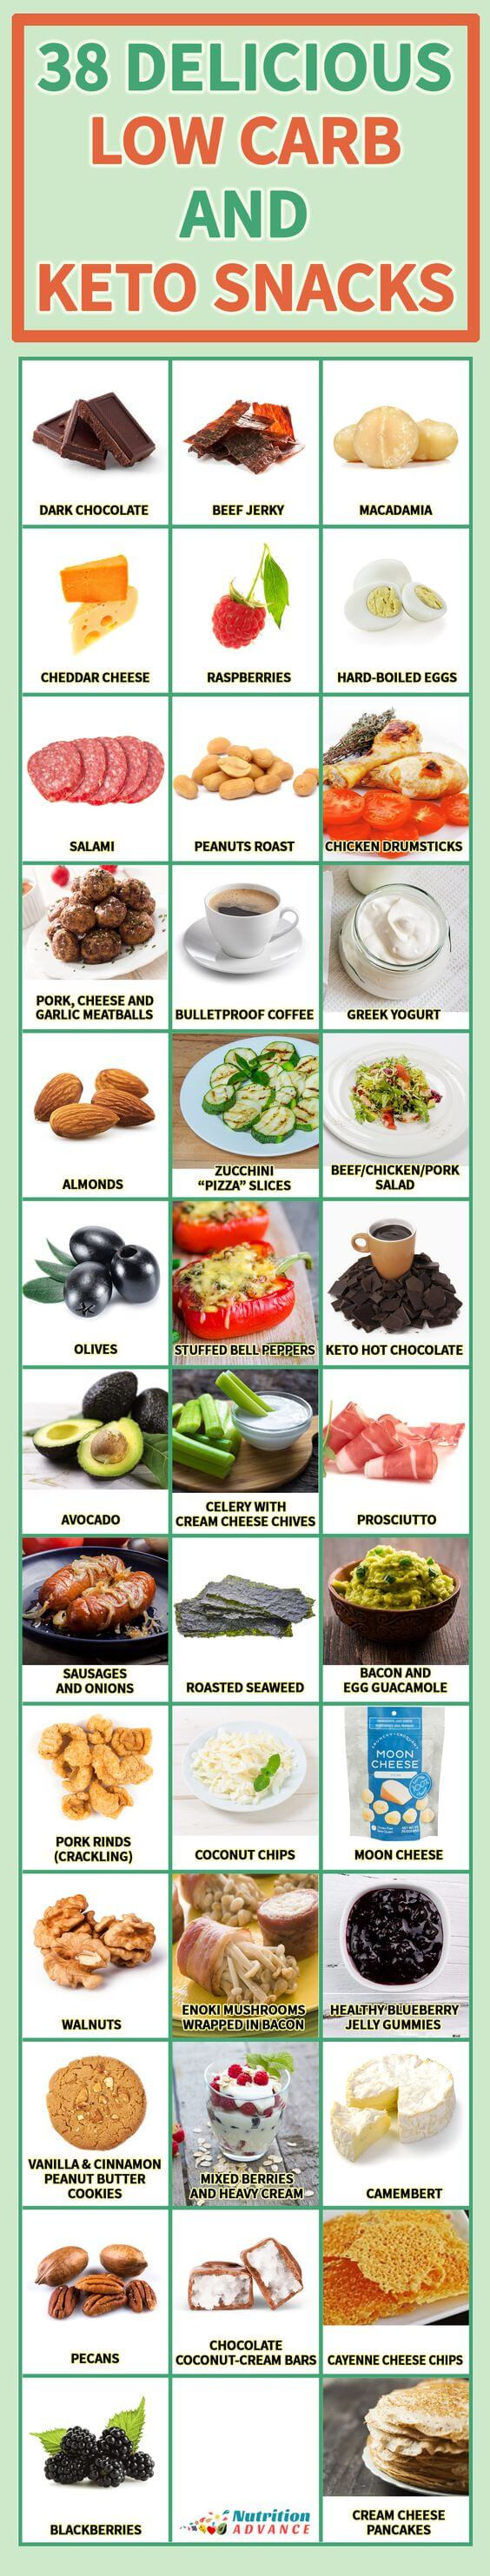 Keto Diet Snacks Ideas  The Best Keto Snack Ideas and 9 Popcorn Substitutes